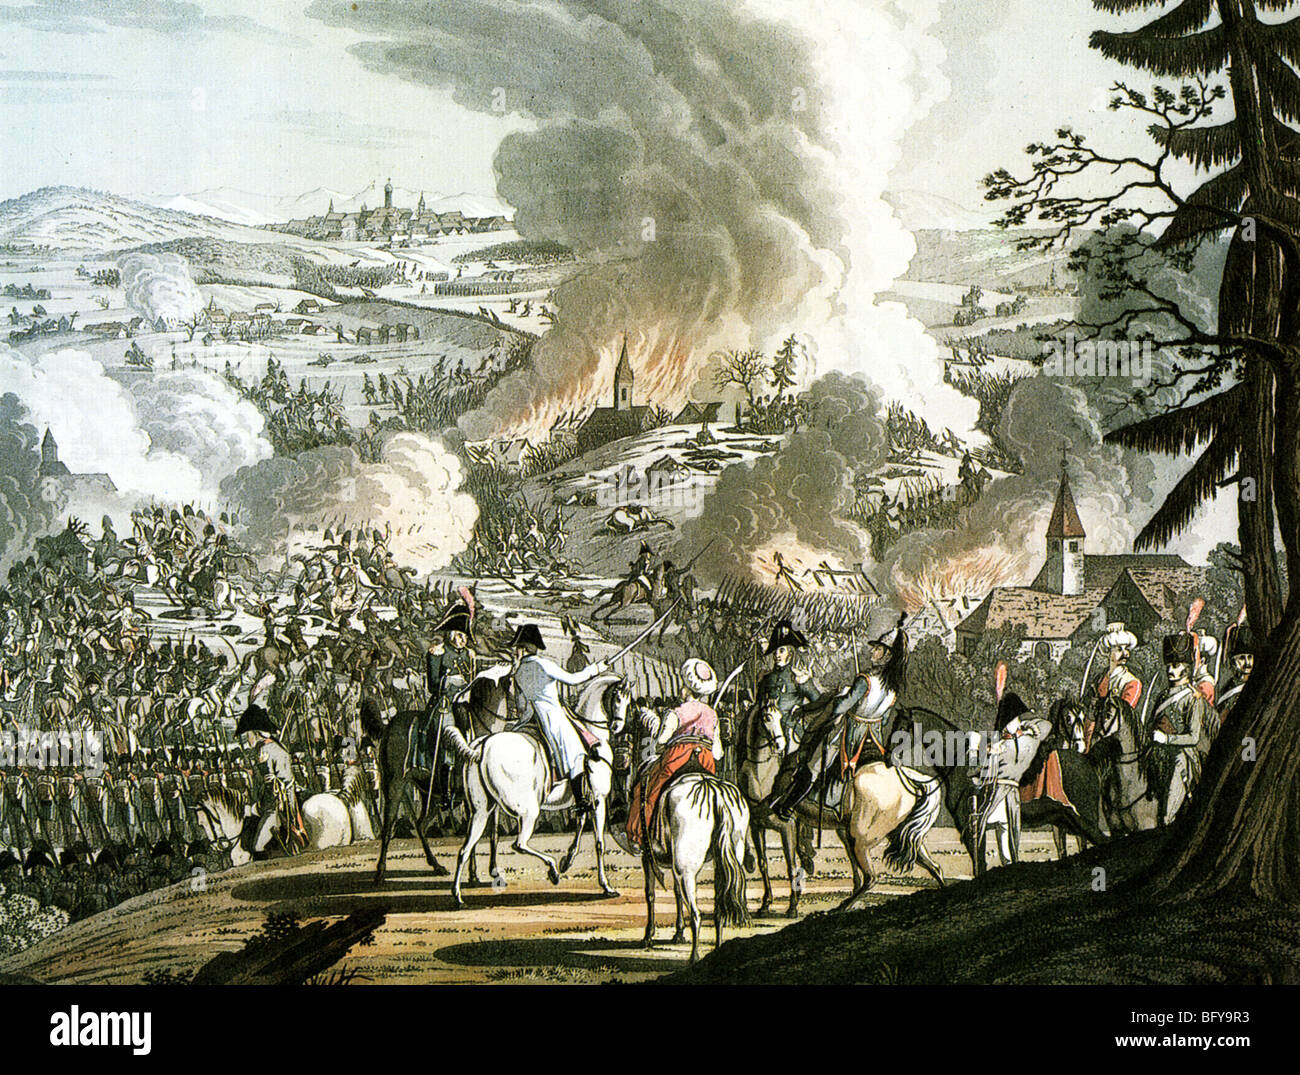 BATTLE OF AUSTERLITZ  2 December 1805. Napoleon lower centre on white horse with turbanded bodygards - Stock Image